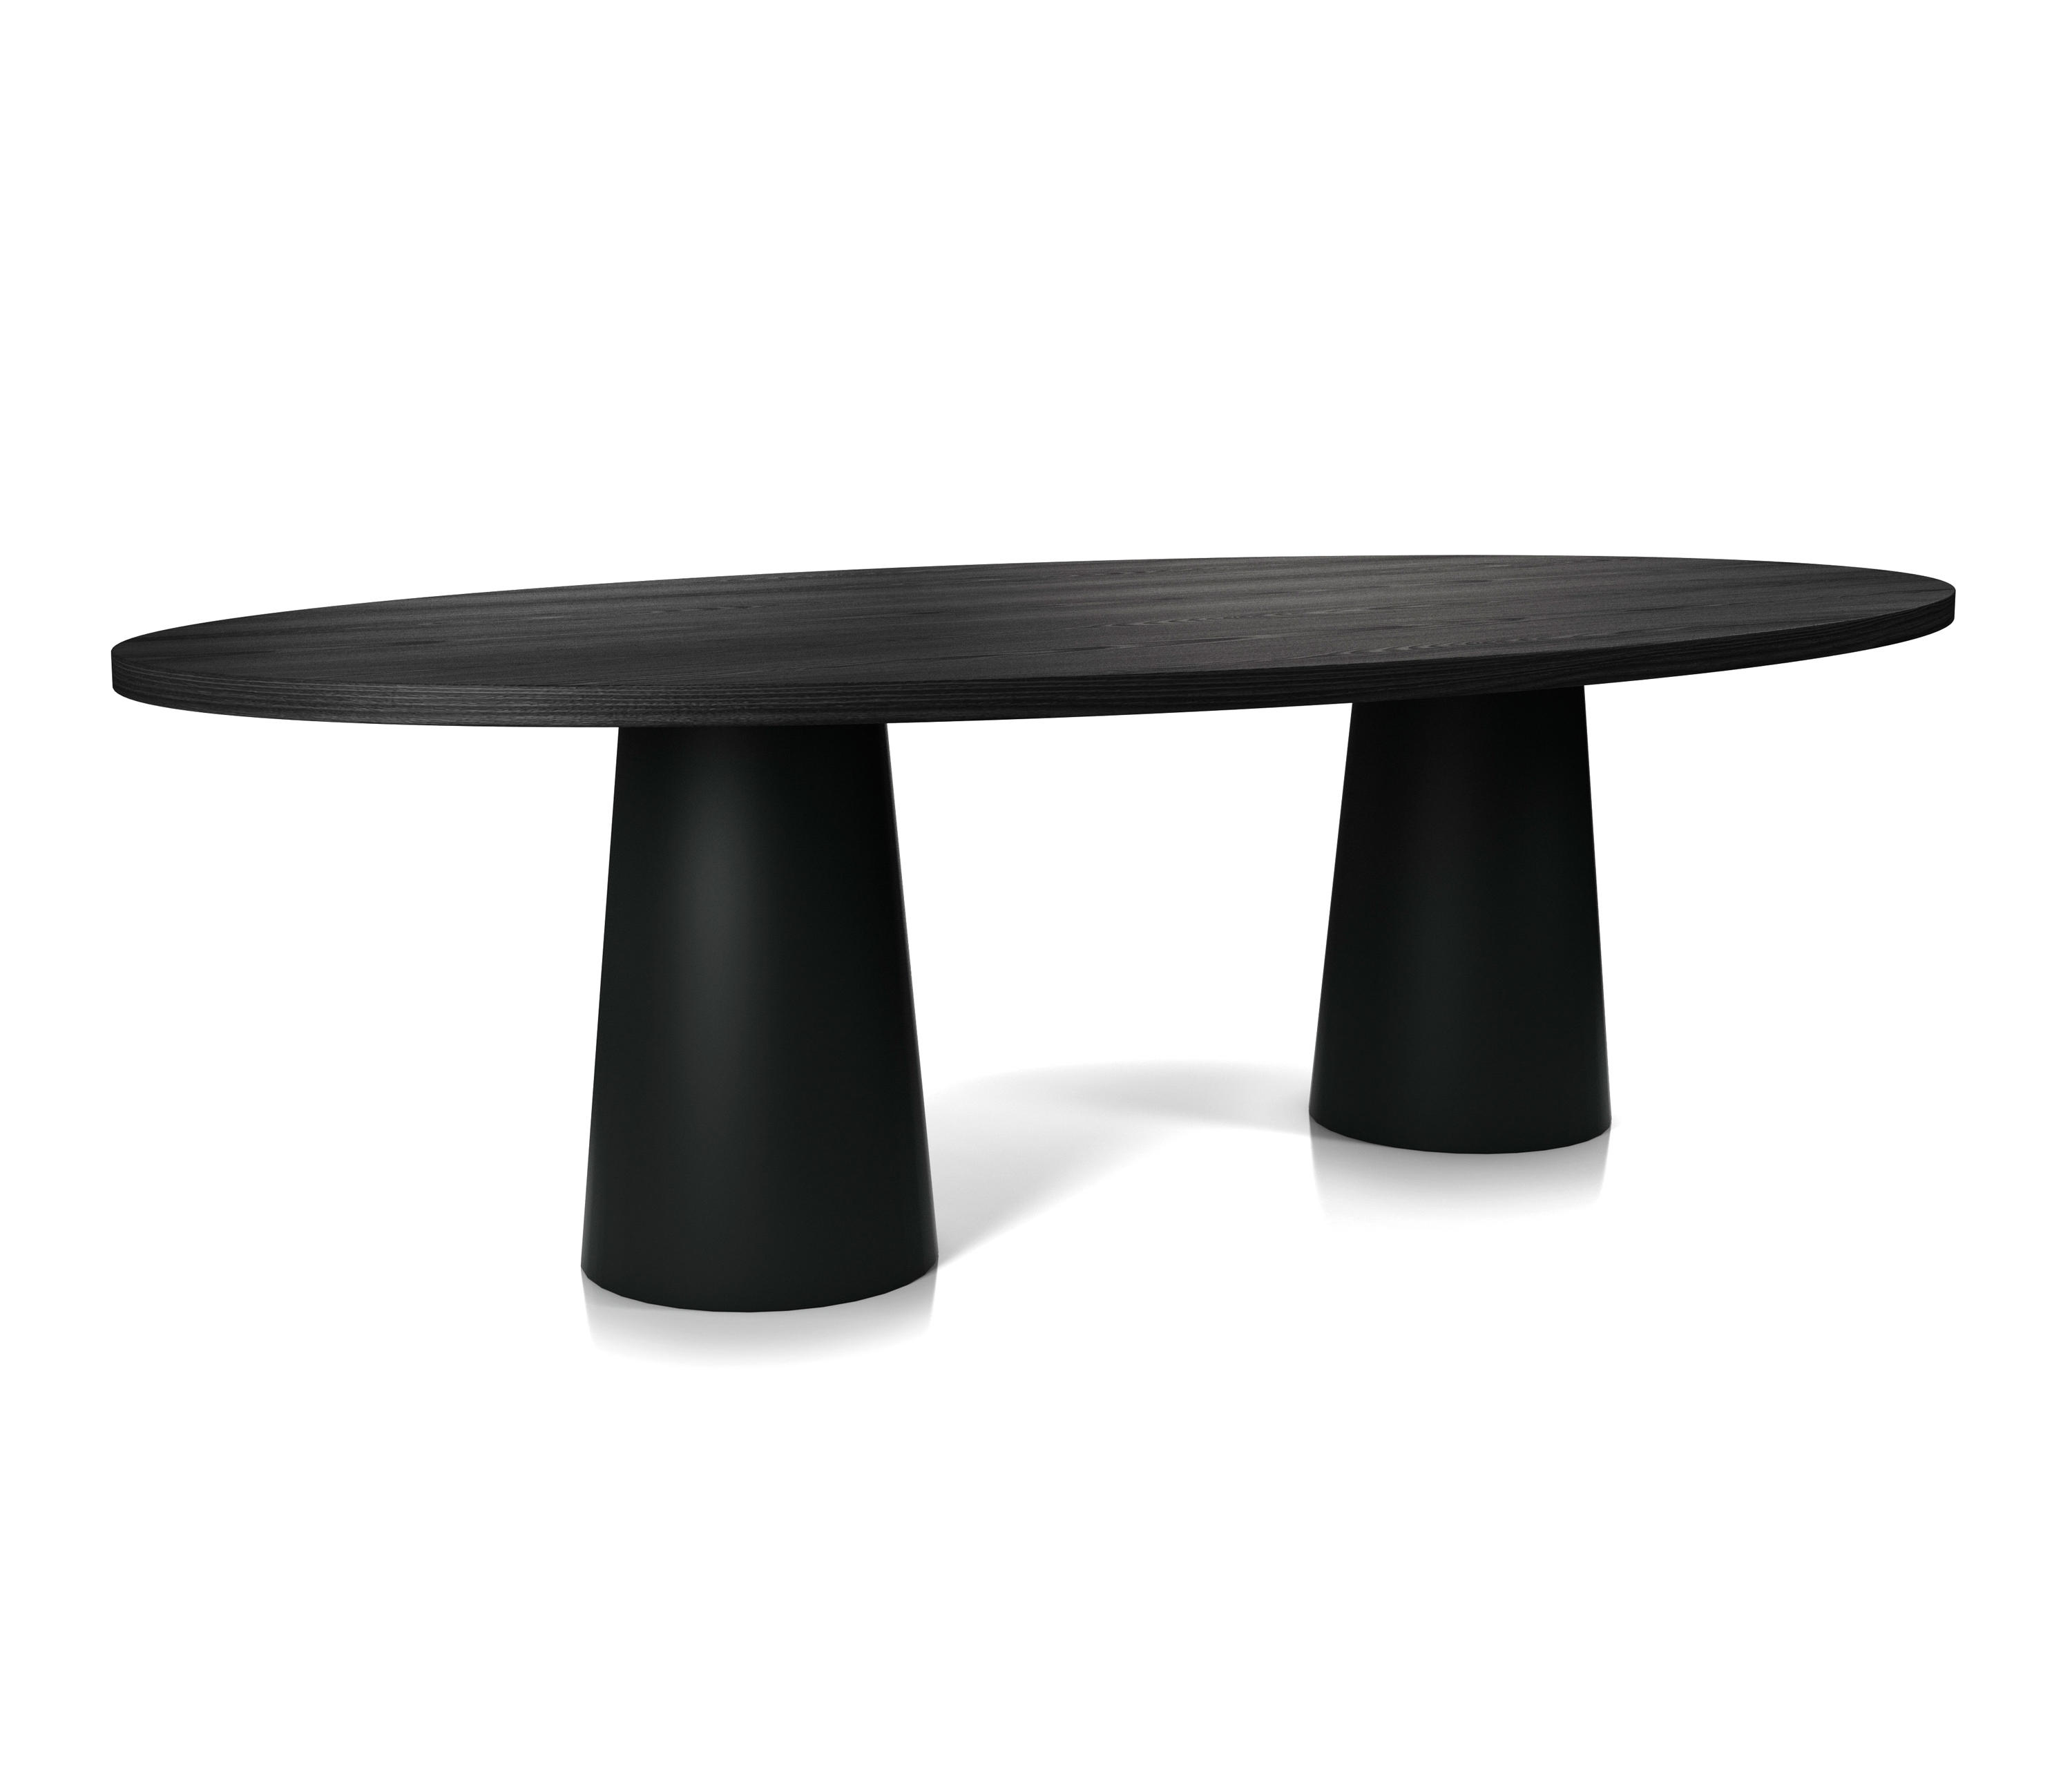 container oval 260 dining tables from moooi architonic. Black Bedroom Furniture Sets. Home Design Ideas